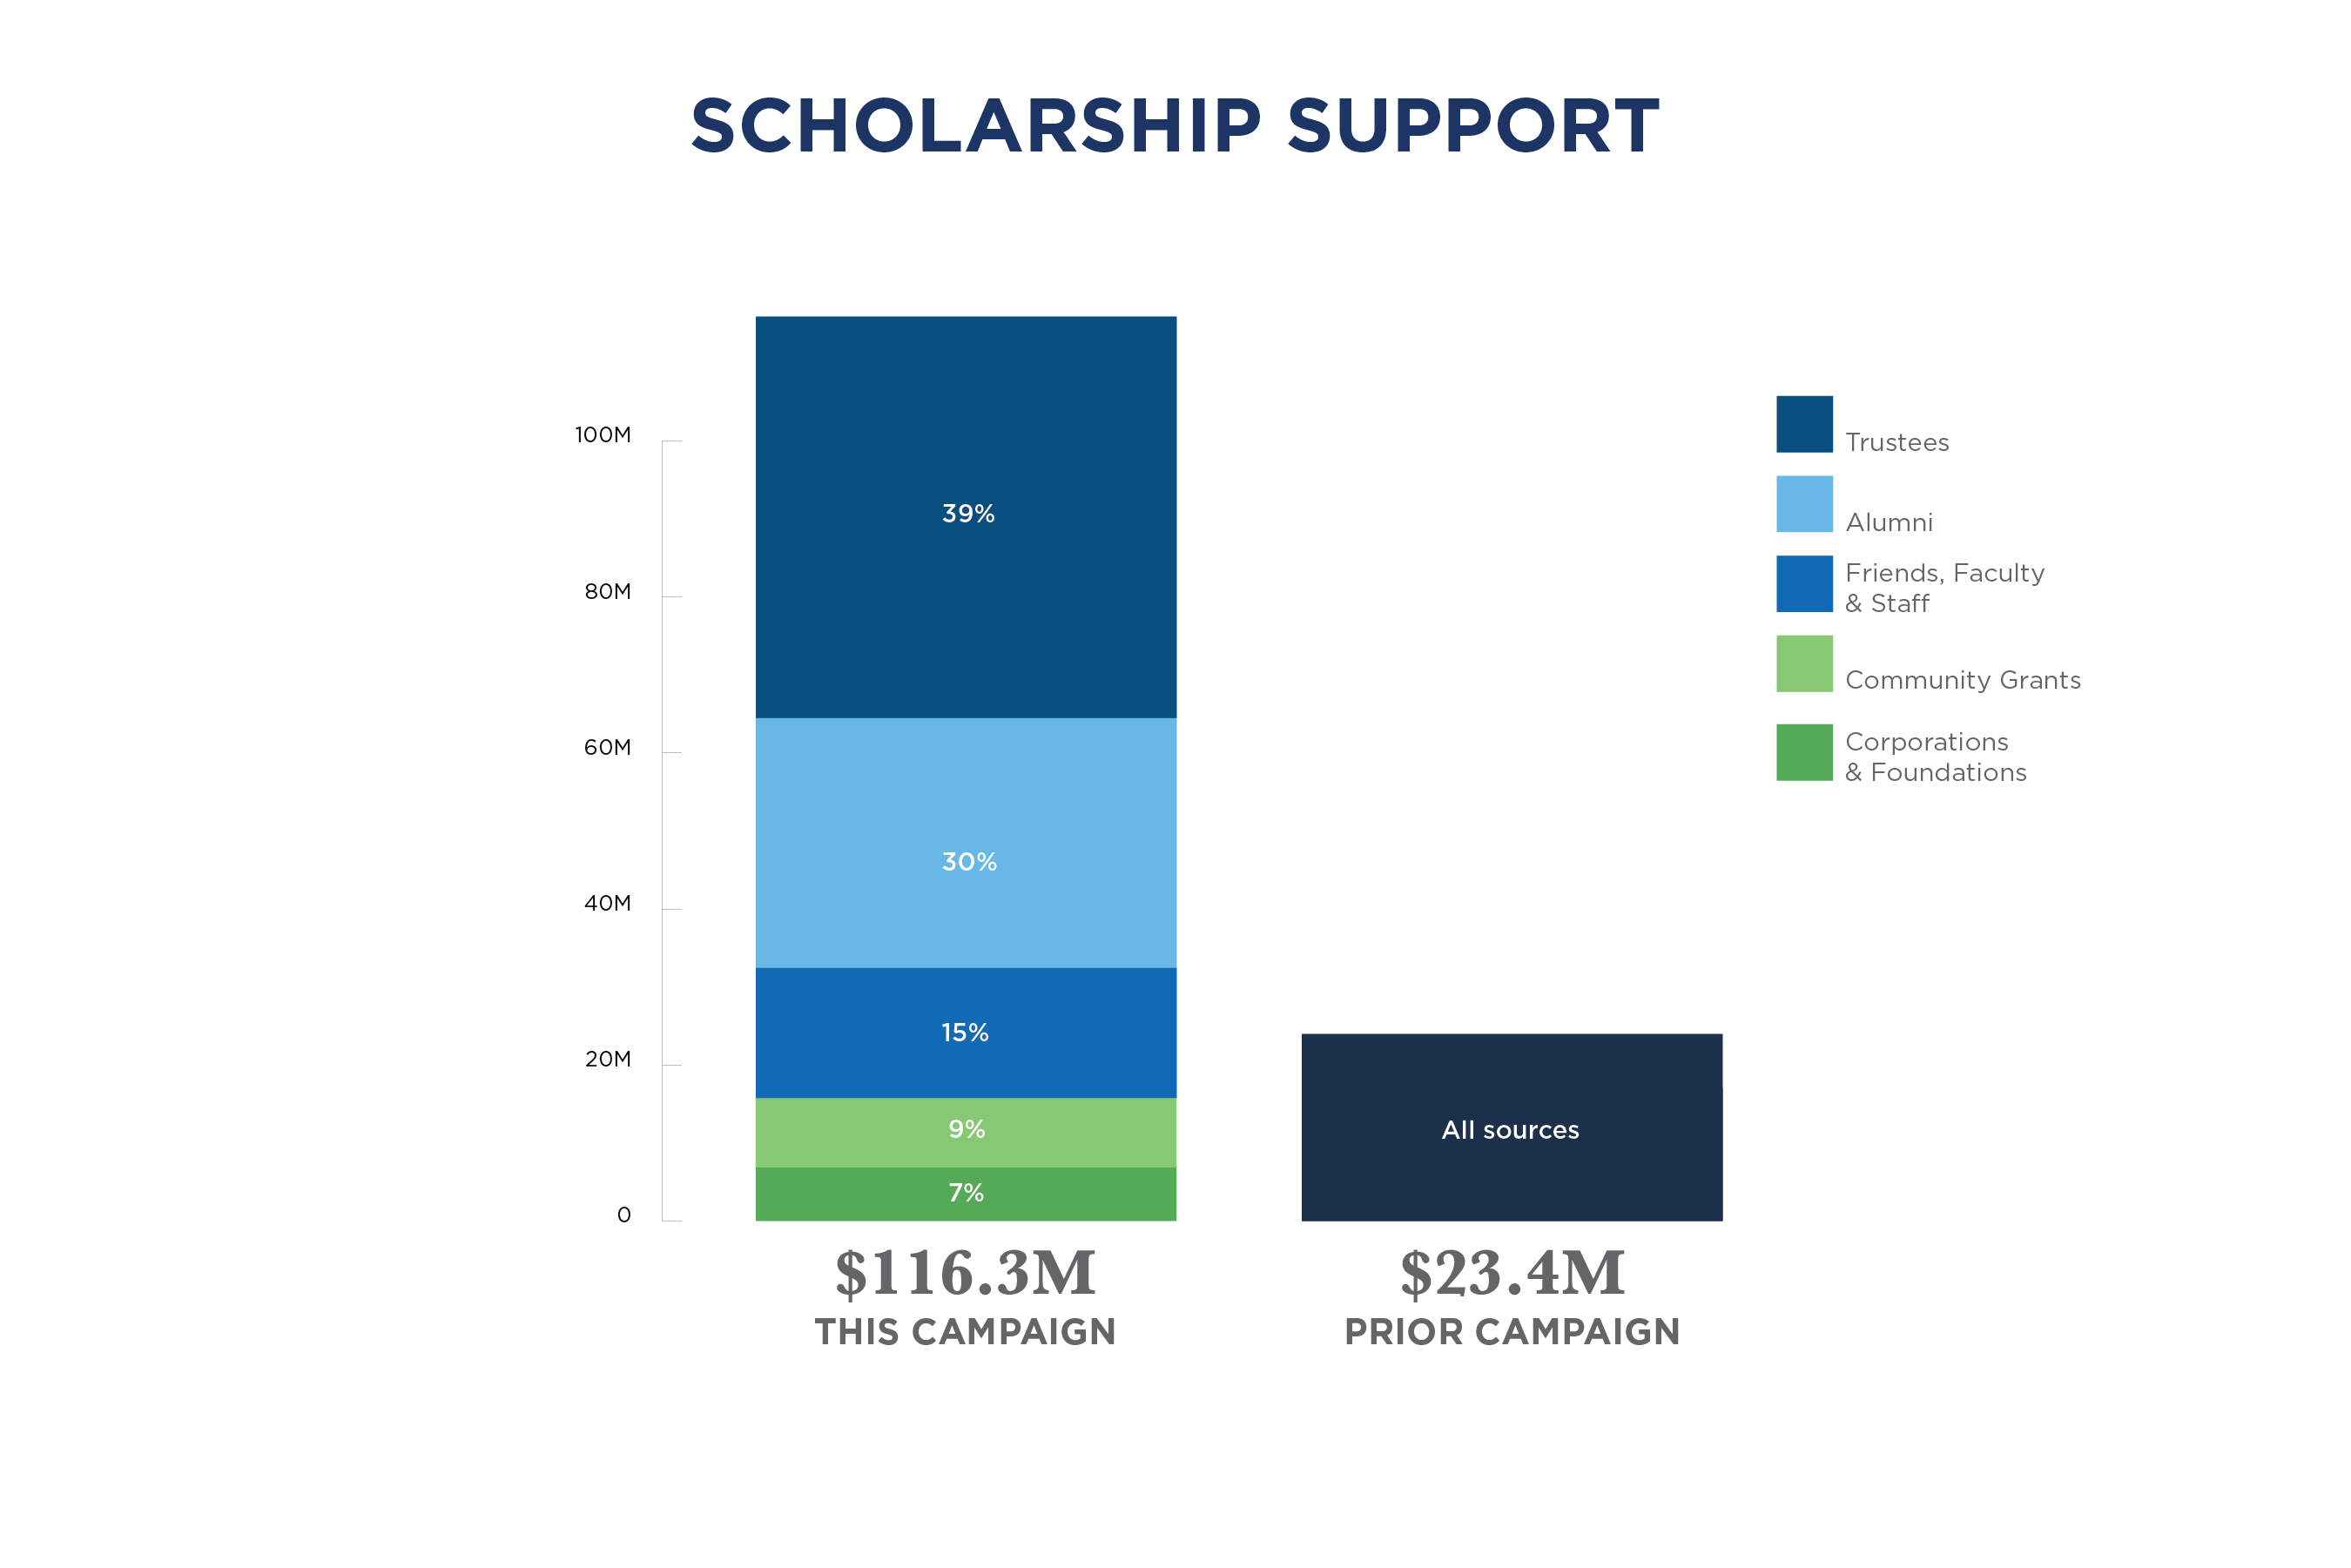 Chart showing Campaign Scholarship Support with 83% ($116.3M) in 2018 v. 17% ($23.4M) in the prior campaign